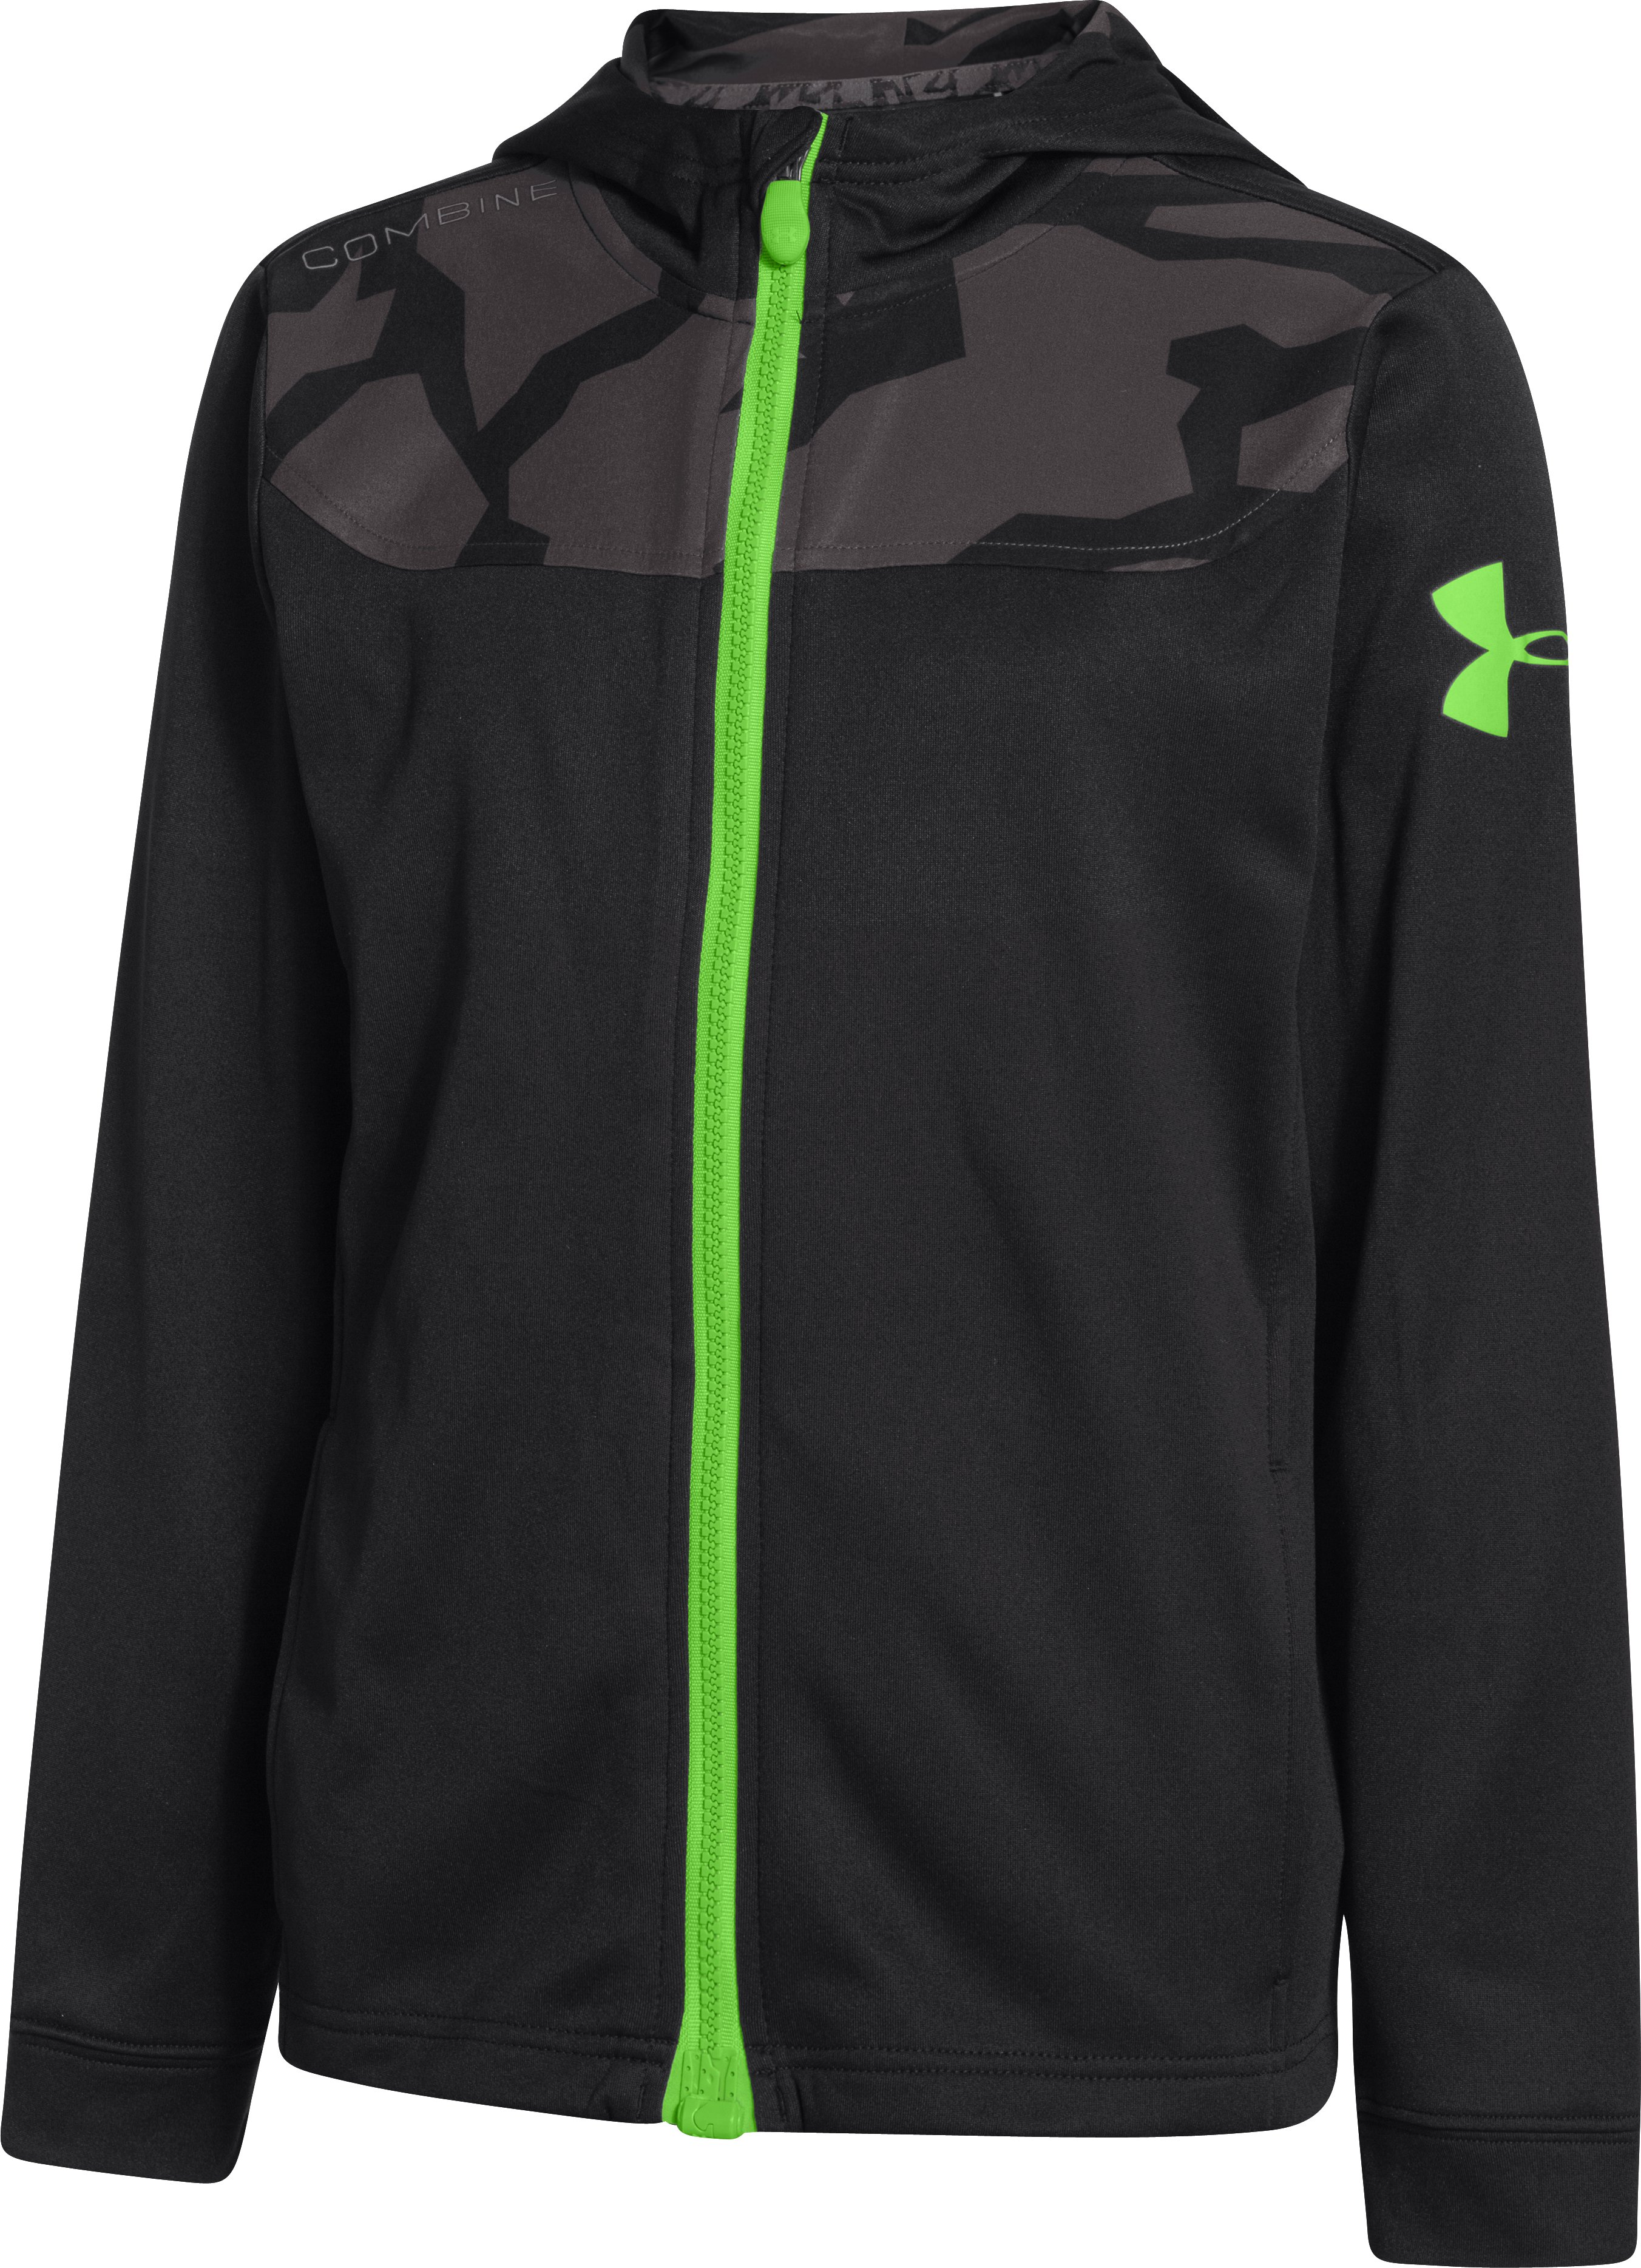 Boys' UA Combine® Training Jacket, Black